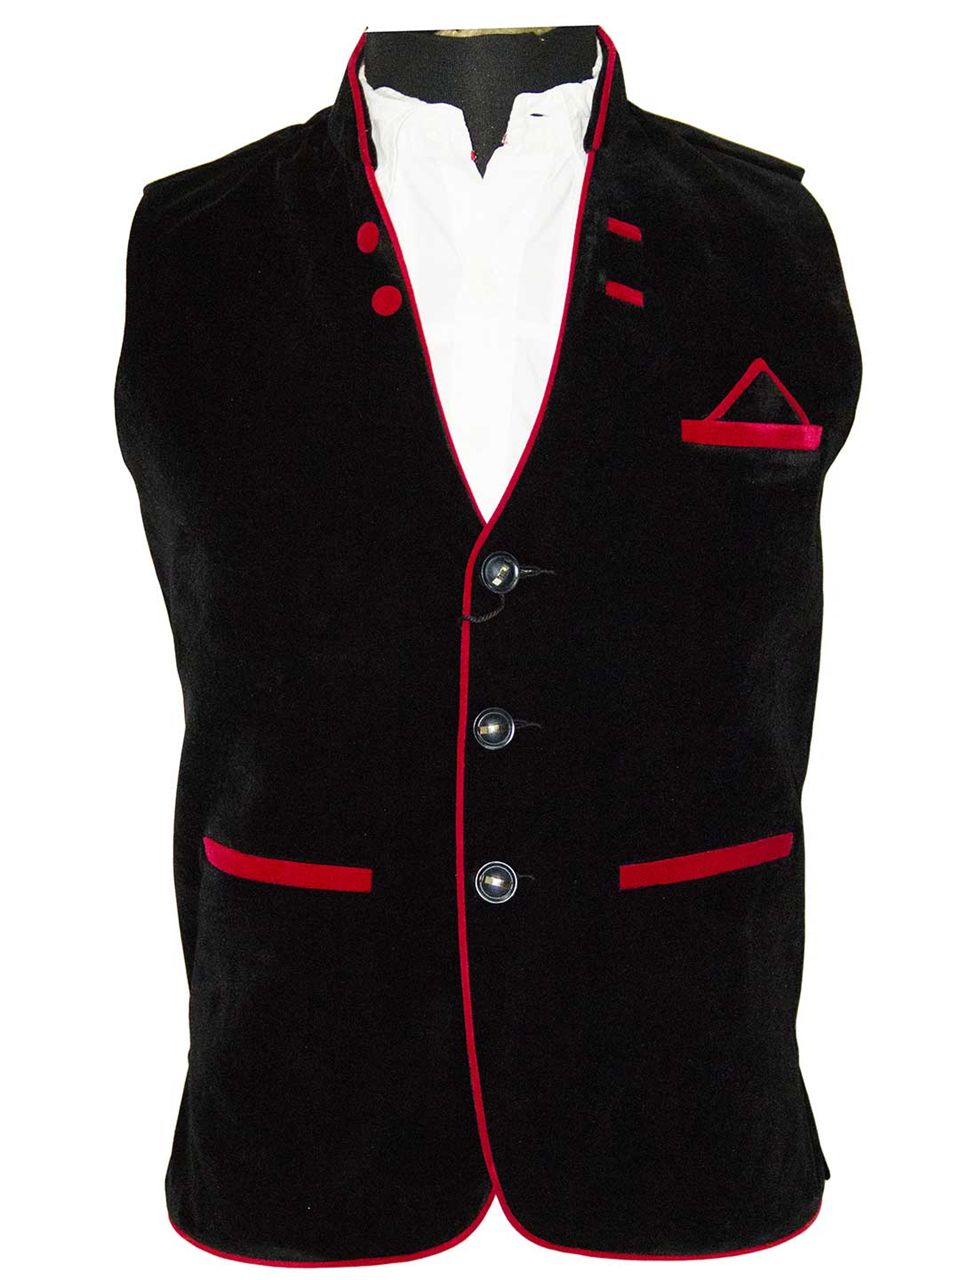 Shop fashion waistcoat sale online at Twinkledeals. Search the latest waistcoat with affordable price and free shipping available worldwide.